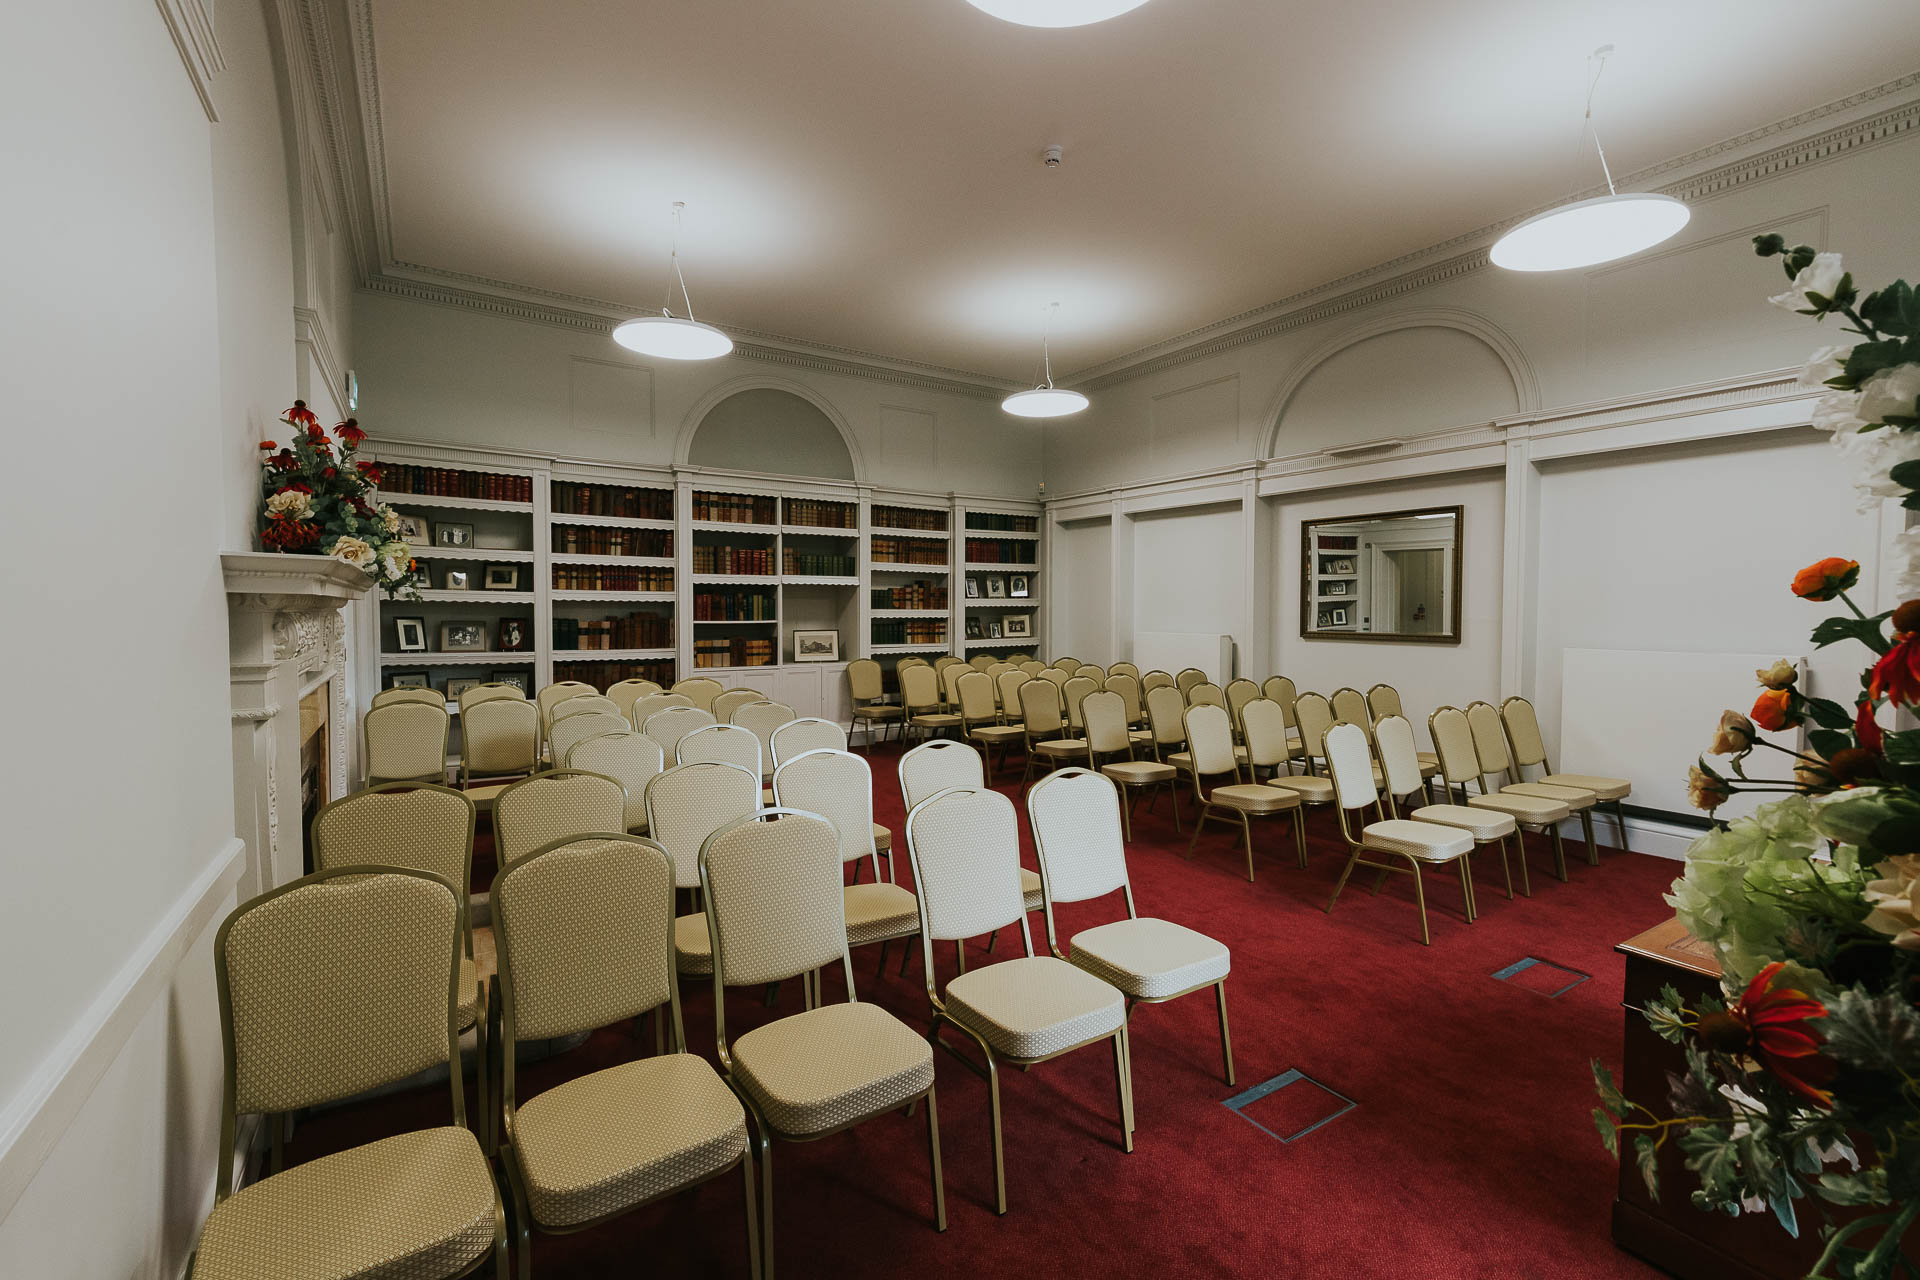 The Library - Ceremony Rooms, Registry Office